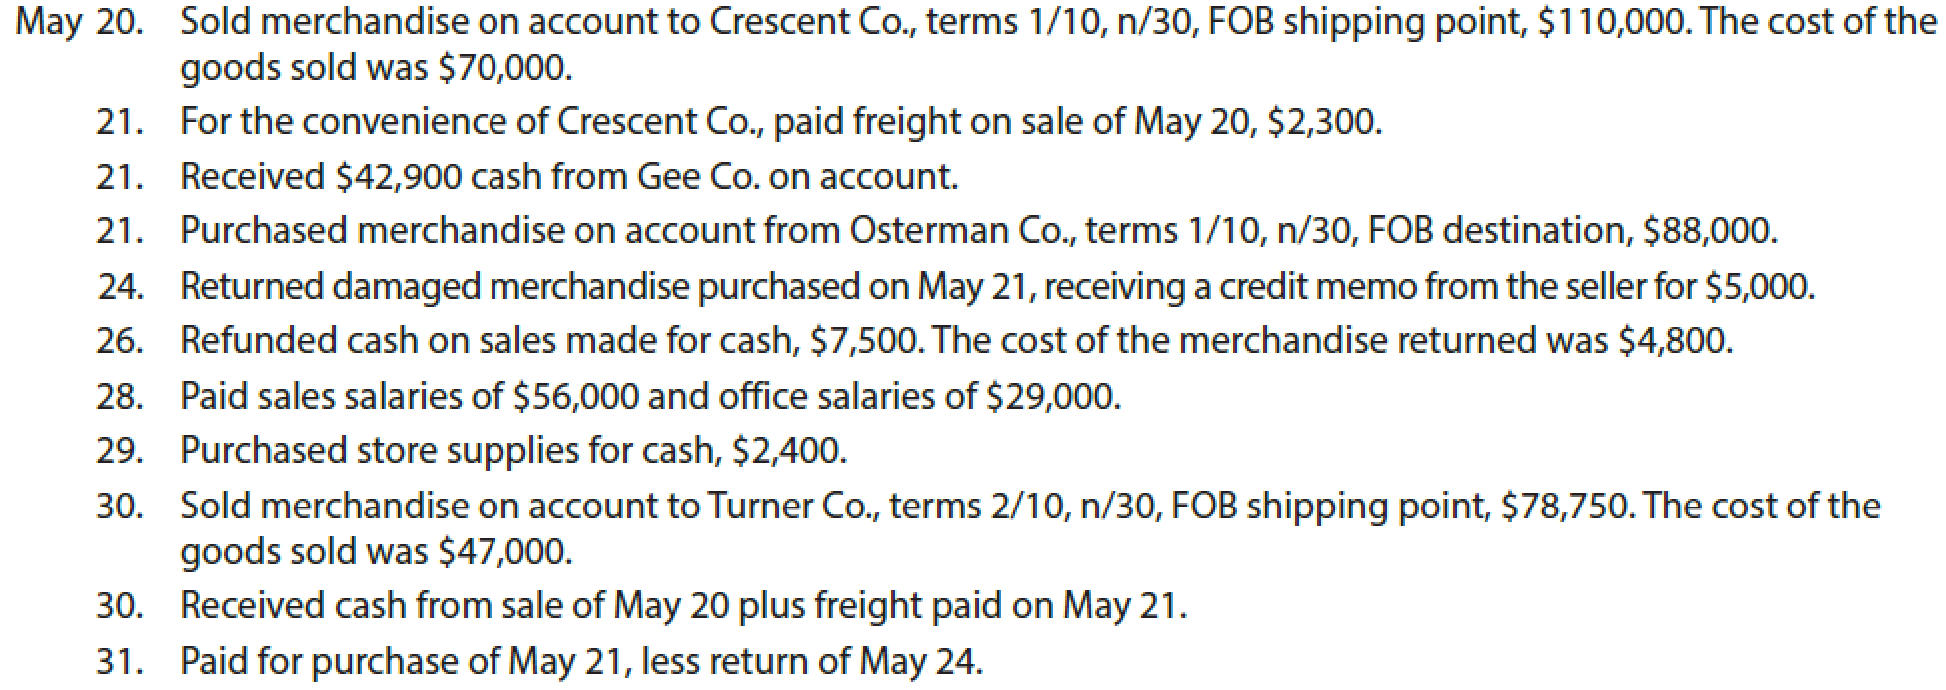 Chapter 5, Problem 1COMP, Palisade Creek Co. is a retail business that uses the perpetual inventory system. The account , example  4